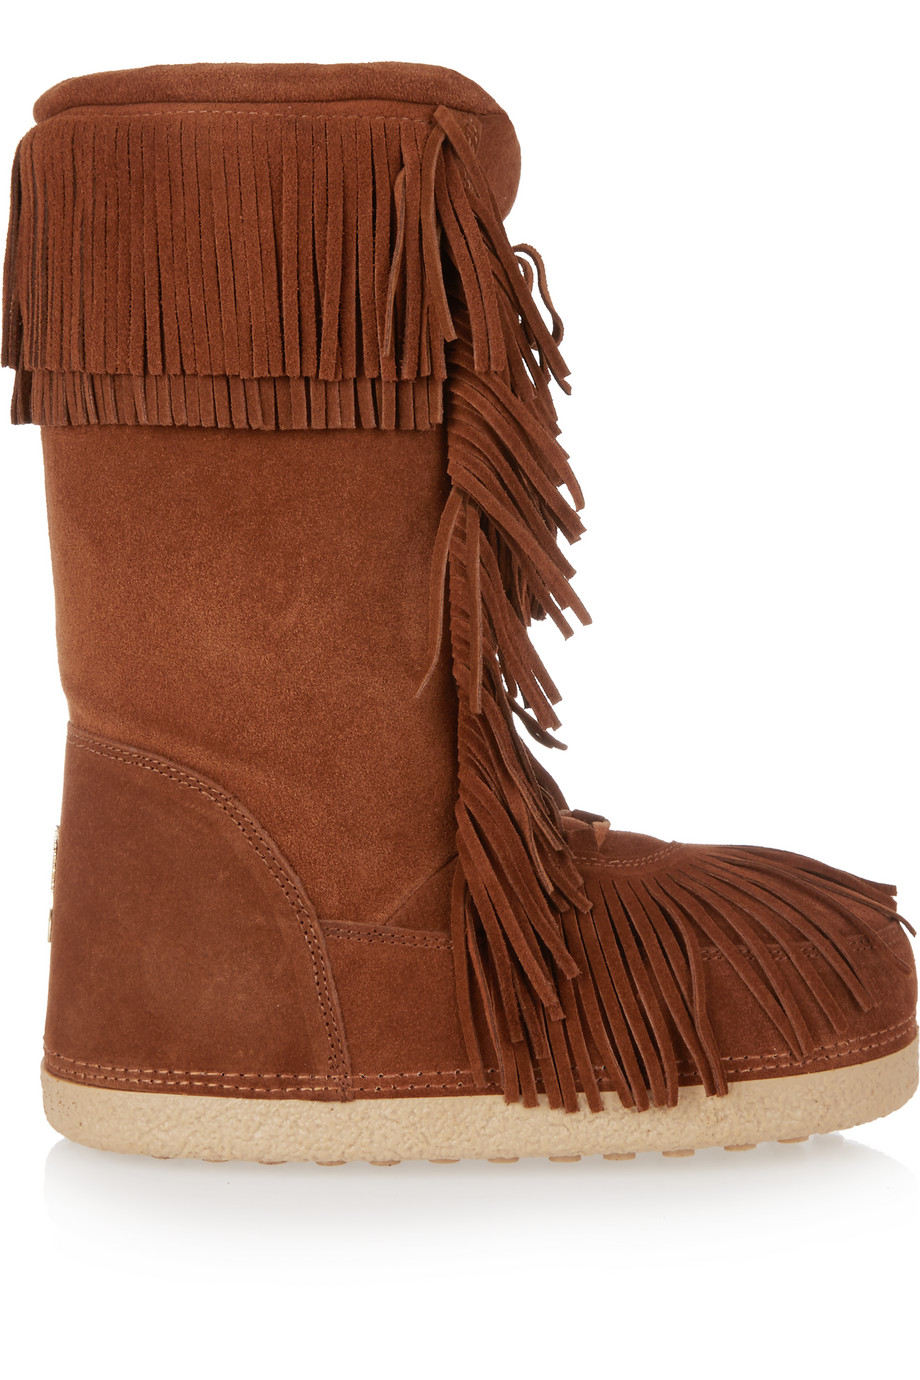 Aquazzura Boho Karlie Shearling-Lined Fringed Suede Boots, Tan, Women's